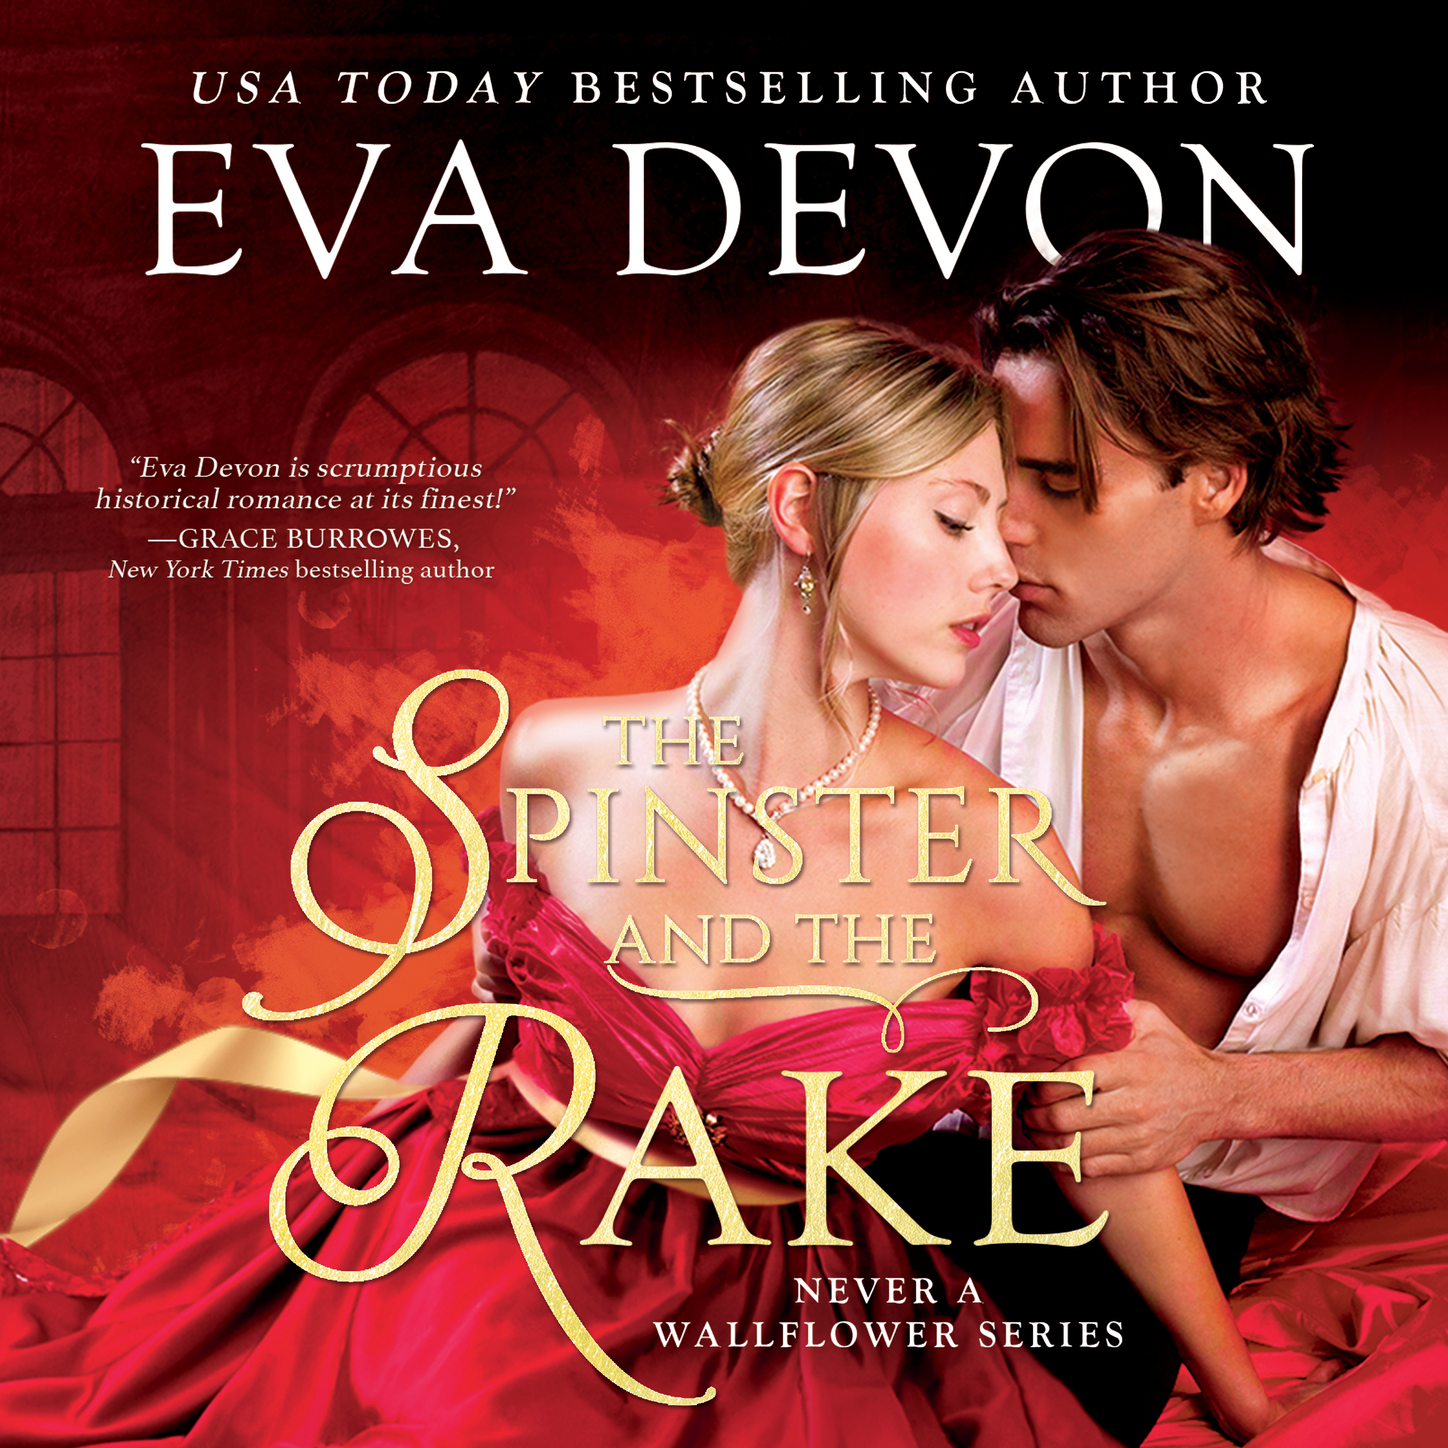 The Spinster and the Rake - Never a Wallflower, Book 1 (Unabridged)